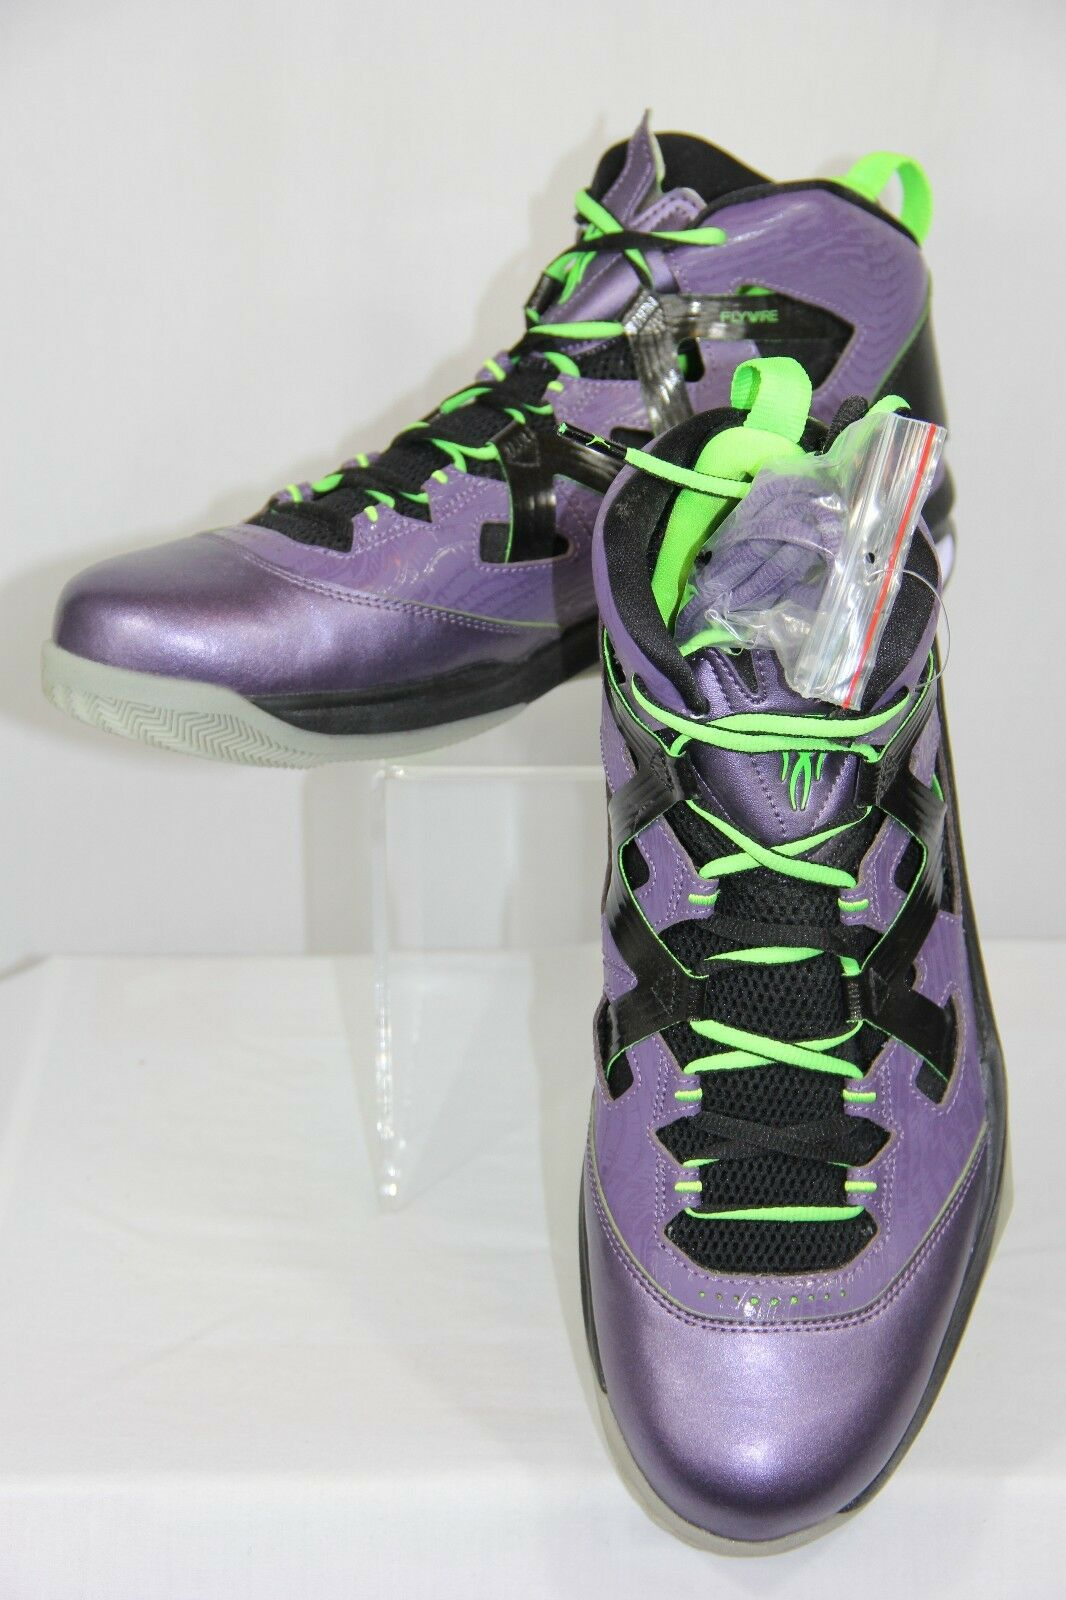 New Nike Jordan Melo M9 Blacklight Basketball Shoes Purple Men Size 11 125